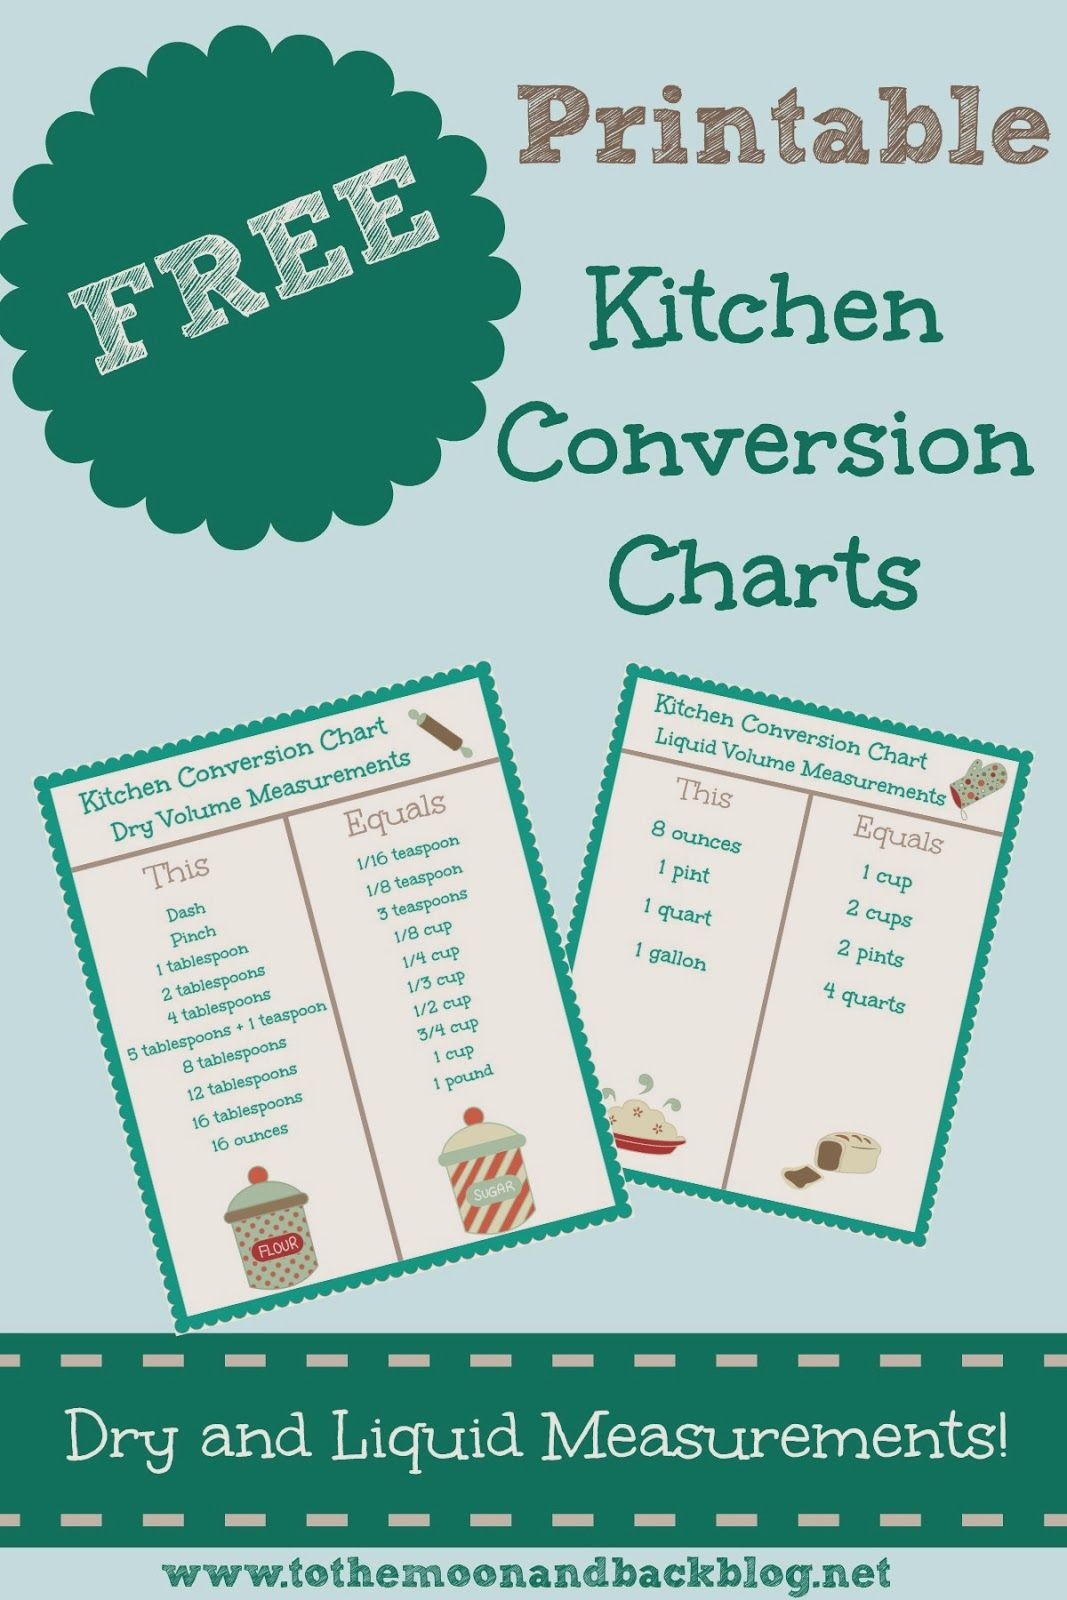 Free Printable Kitchen Conversion Charts